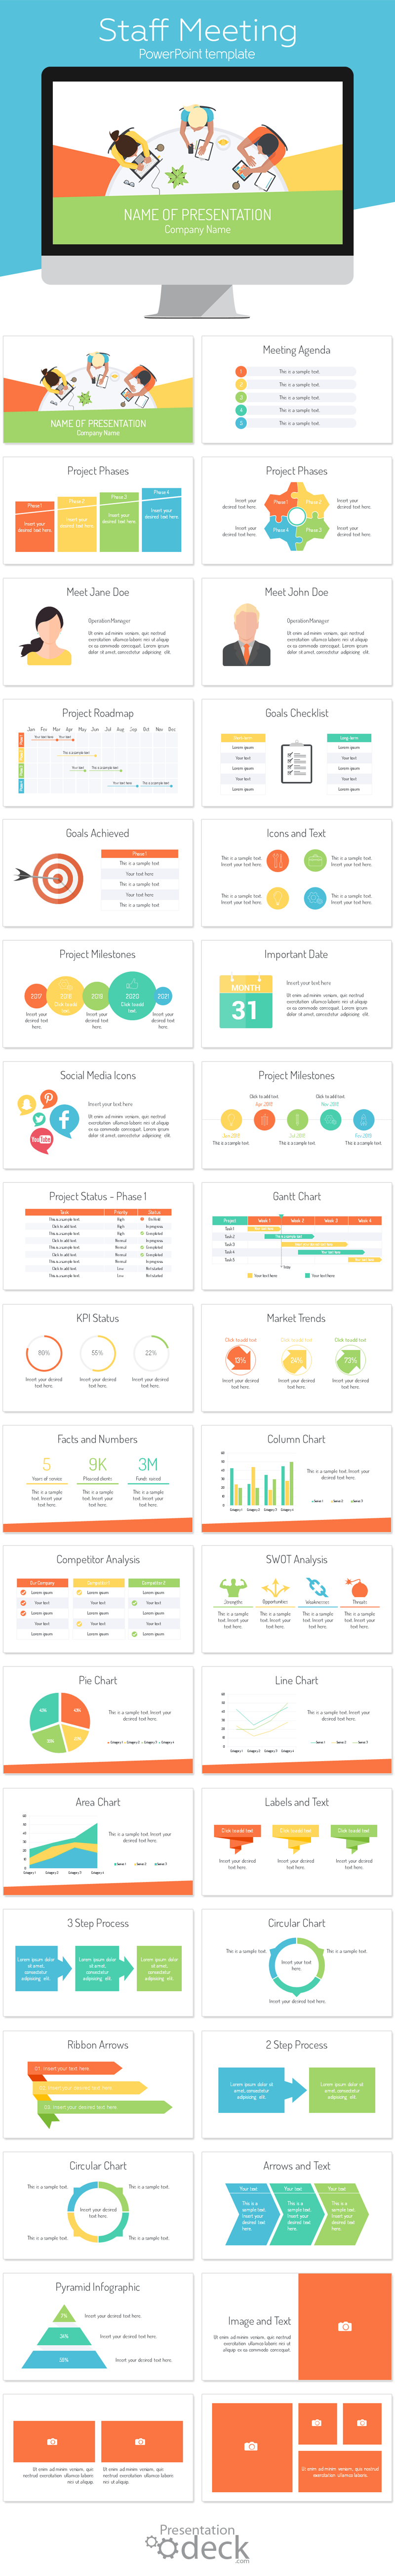 Staff Meeting PowerPoint Template | Powerpoint Templates | Business